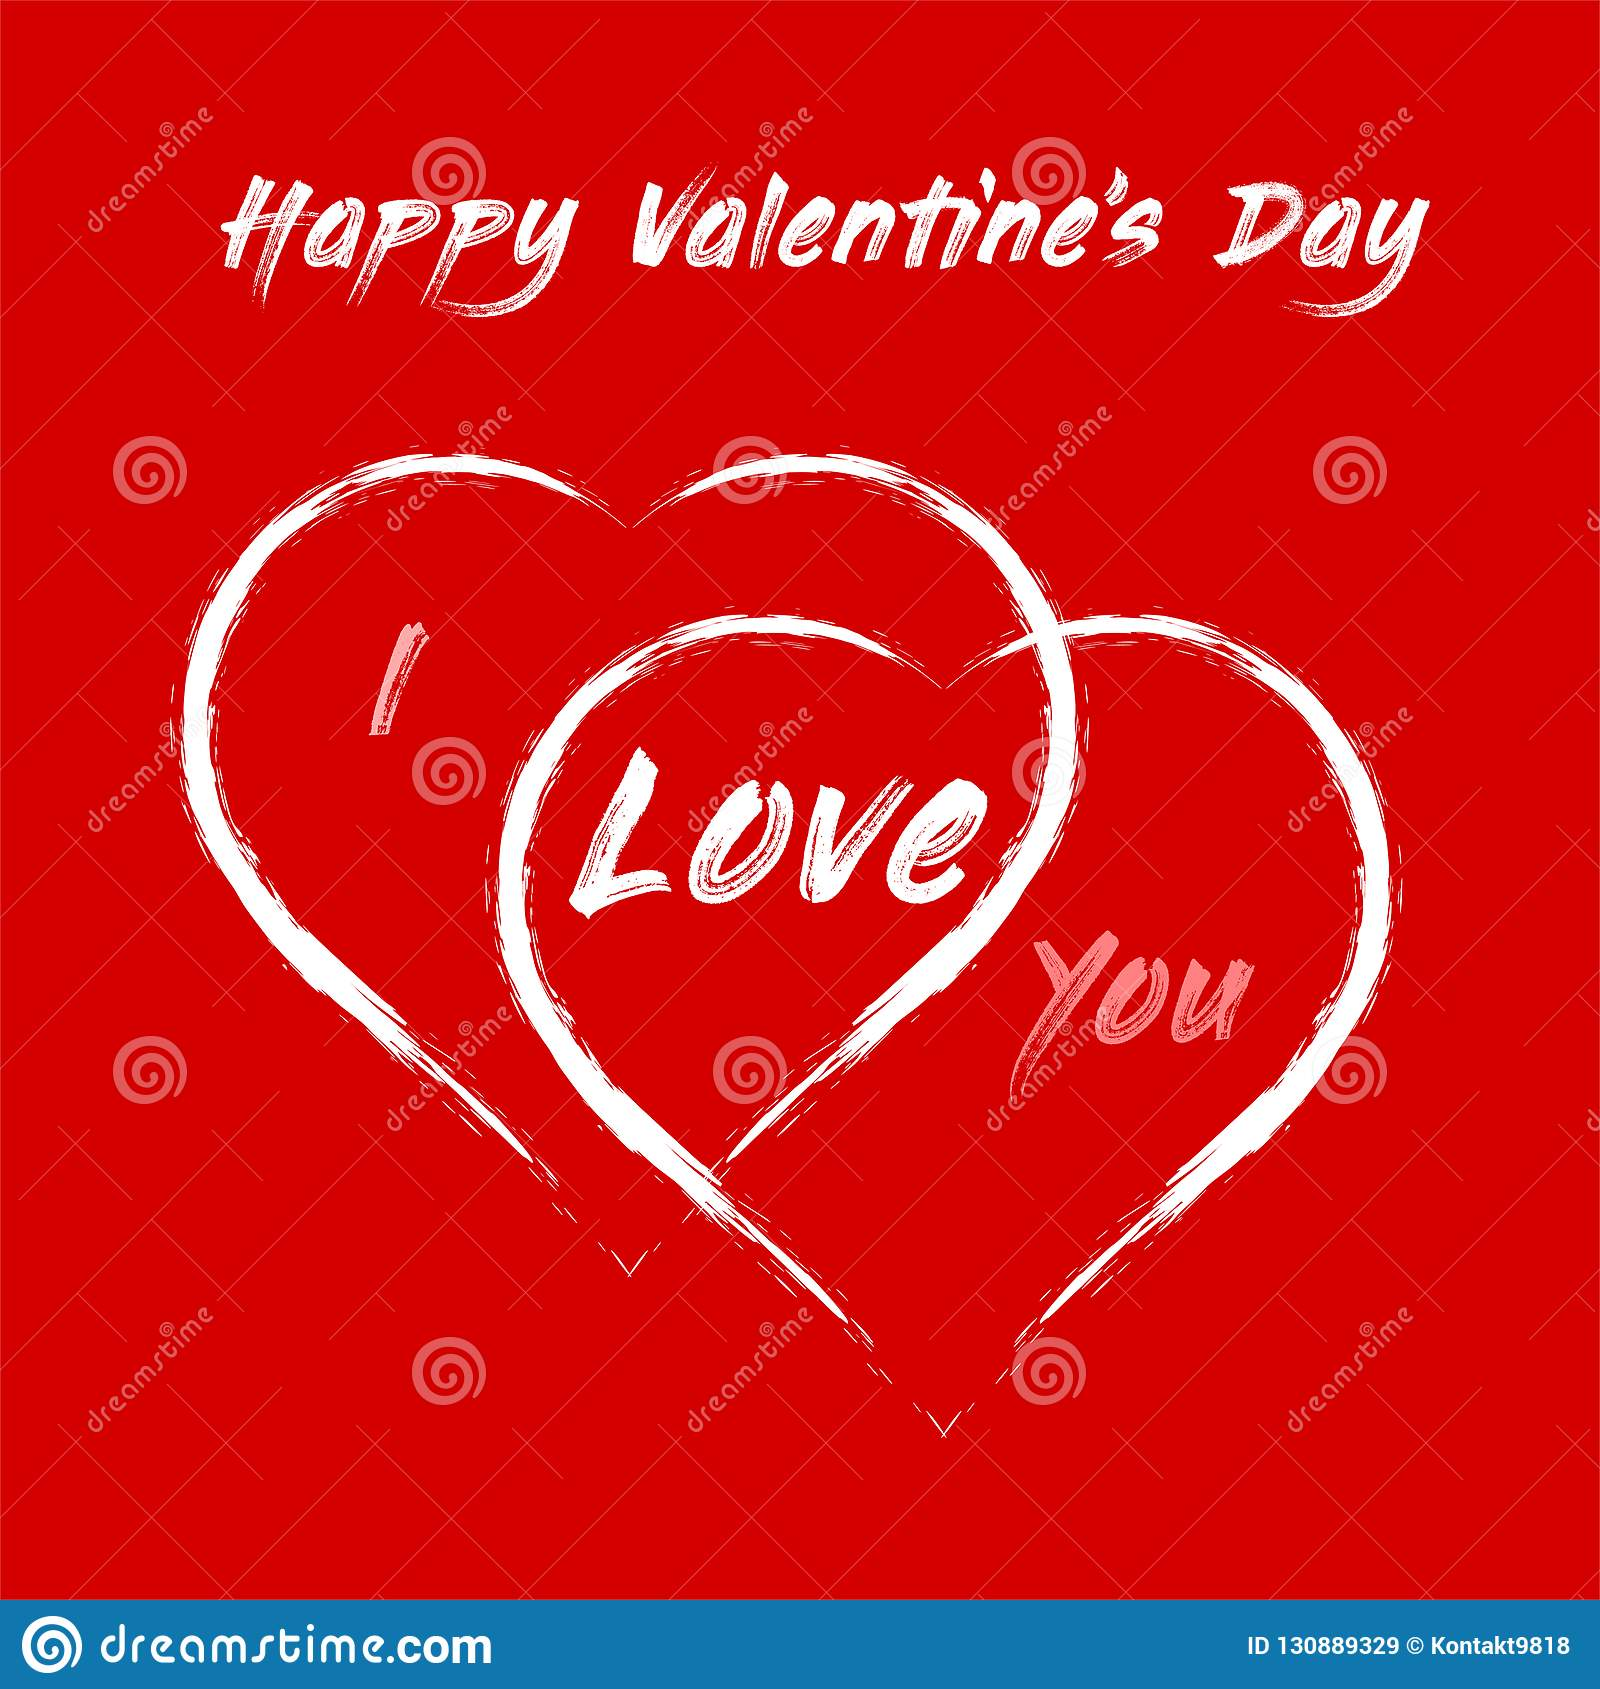 Happy Valentine`s Day - two big hearts and declaration of love